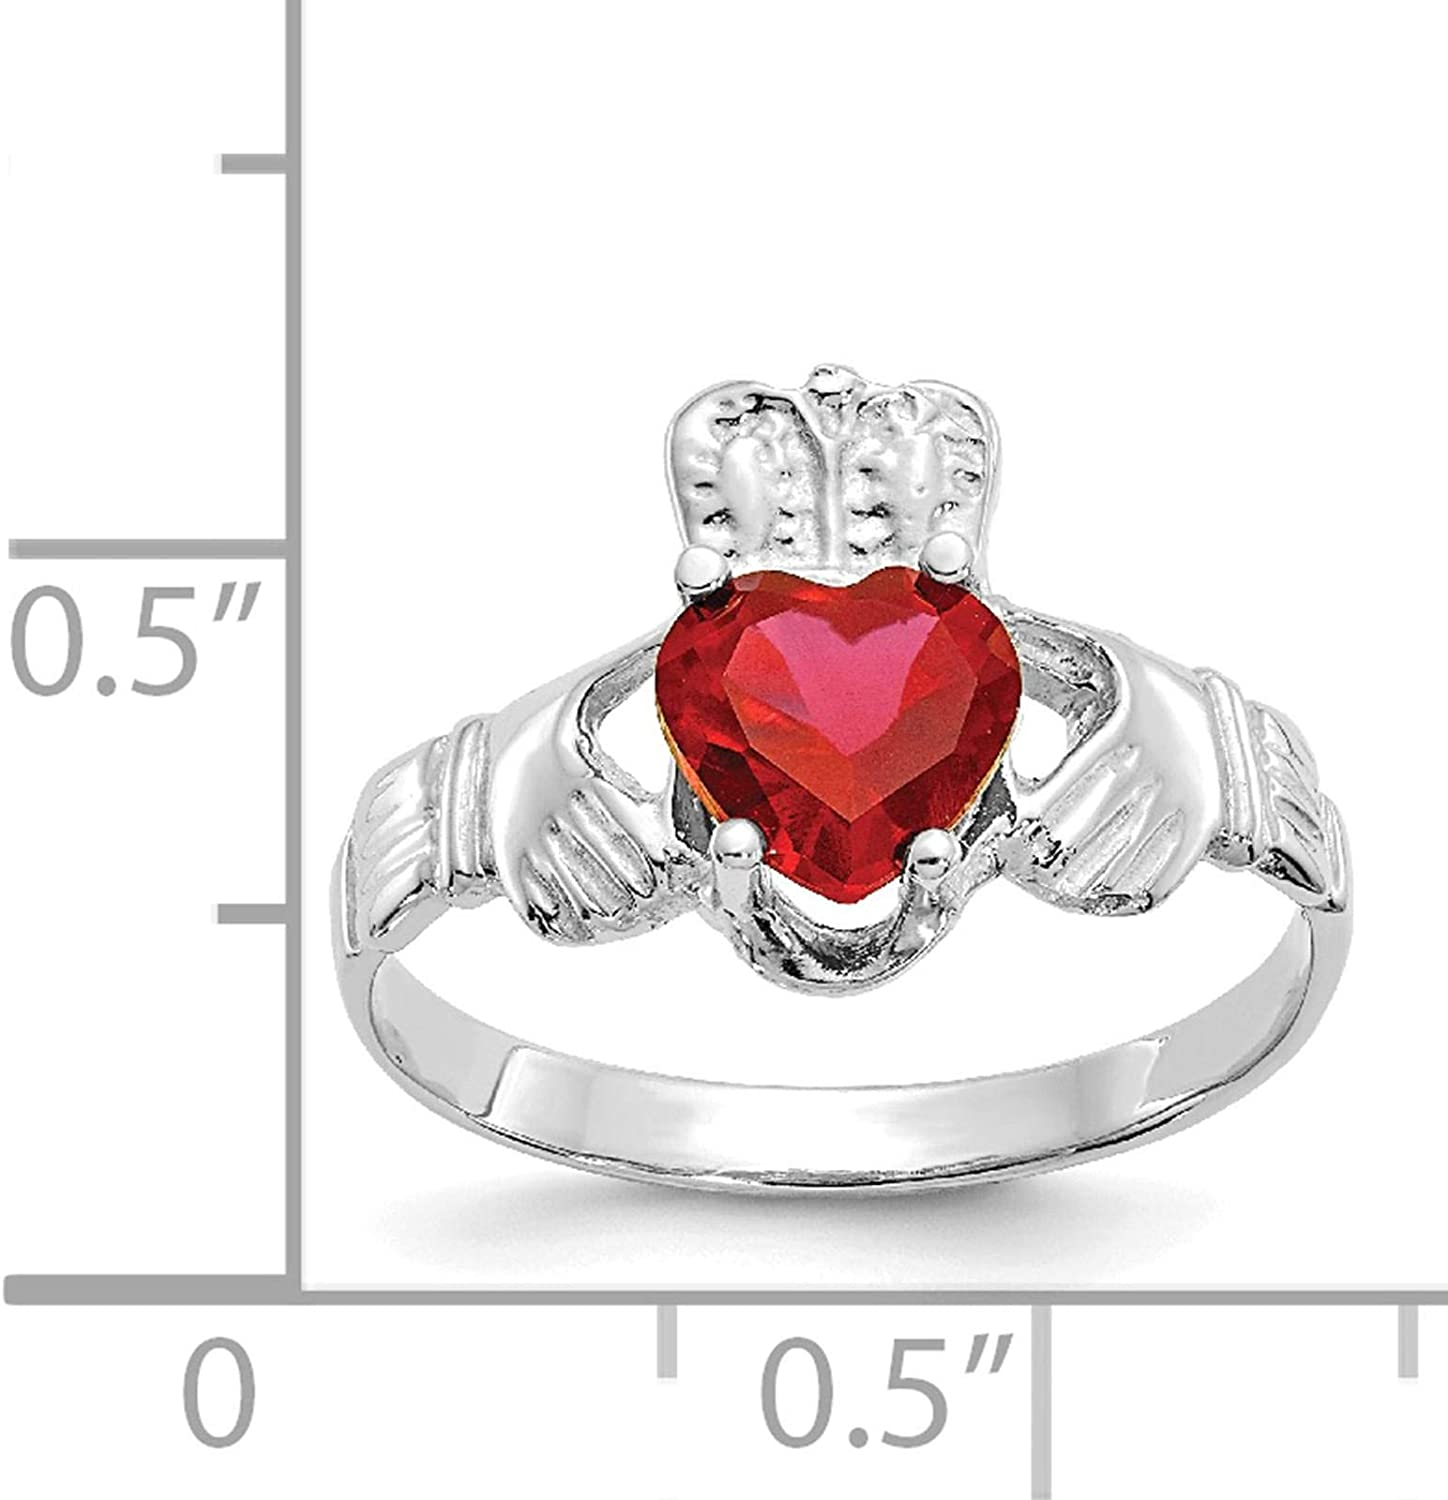 14K White Gold July CZ Stone Claddagh Heart Ring Size 5